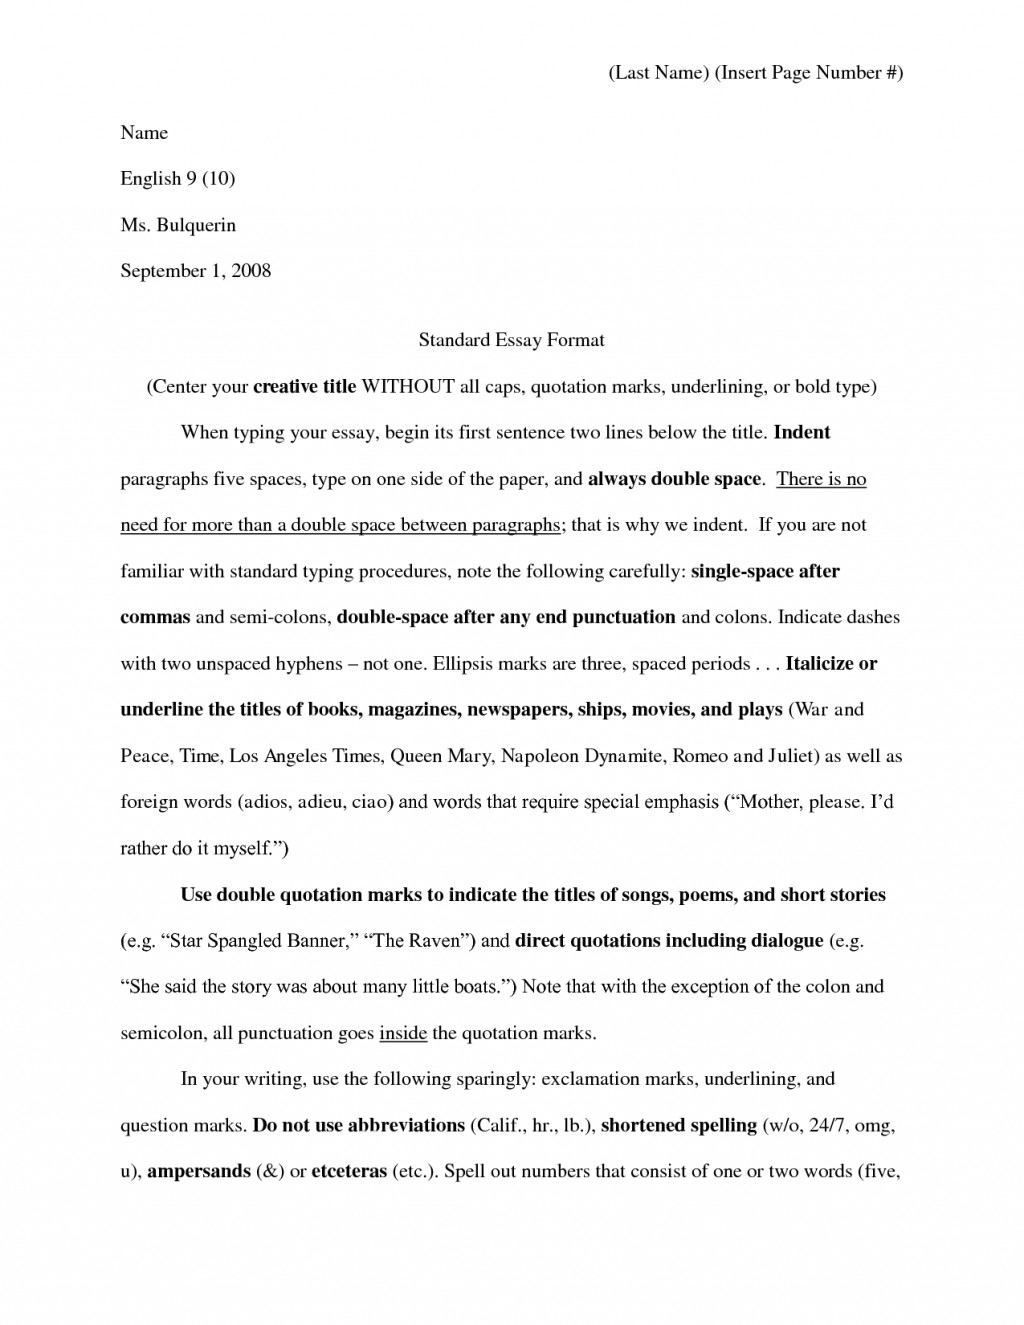 023 Proper Essay Format Unique Pdf Paper College Argumentative Large